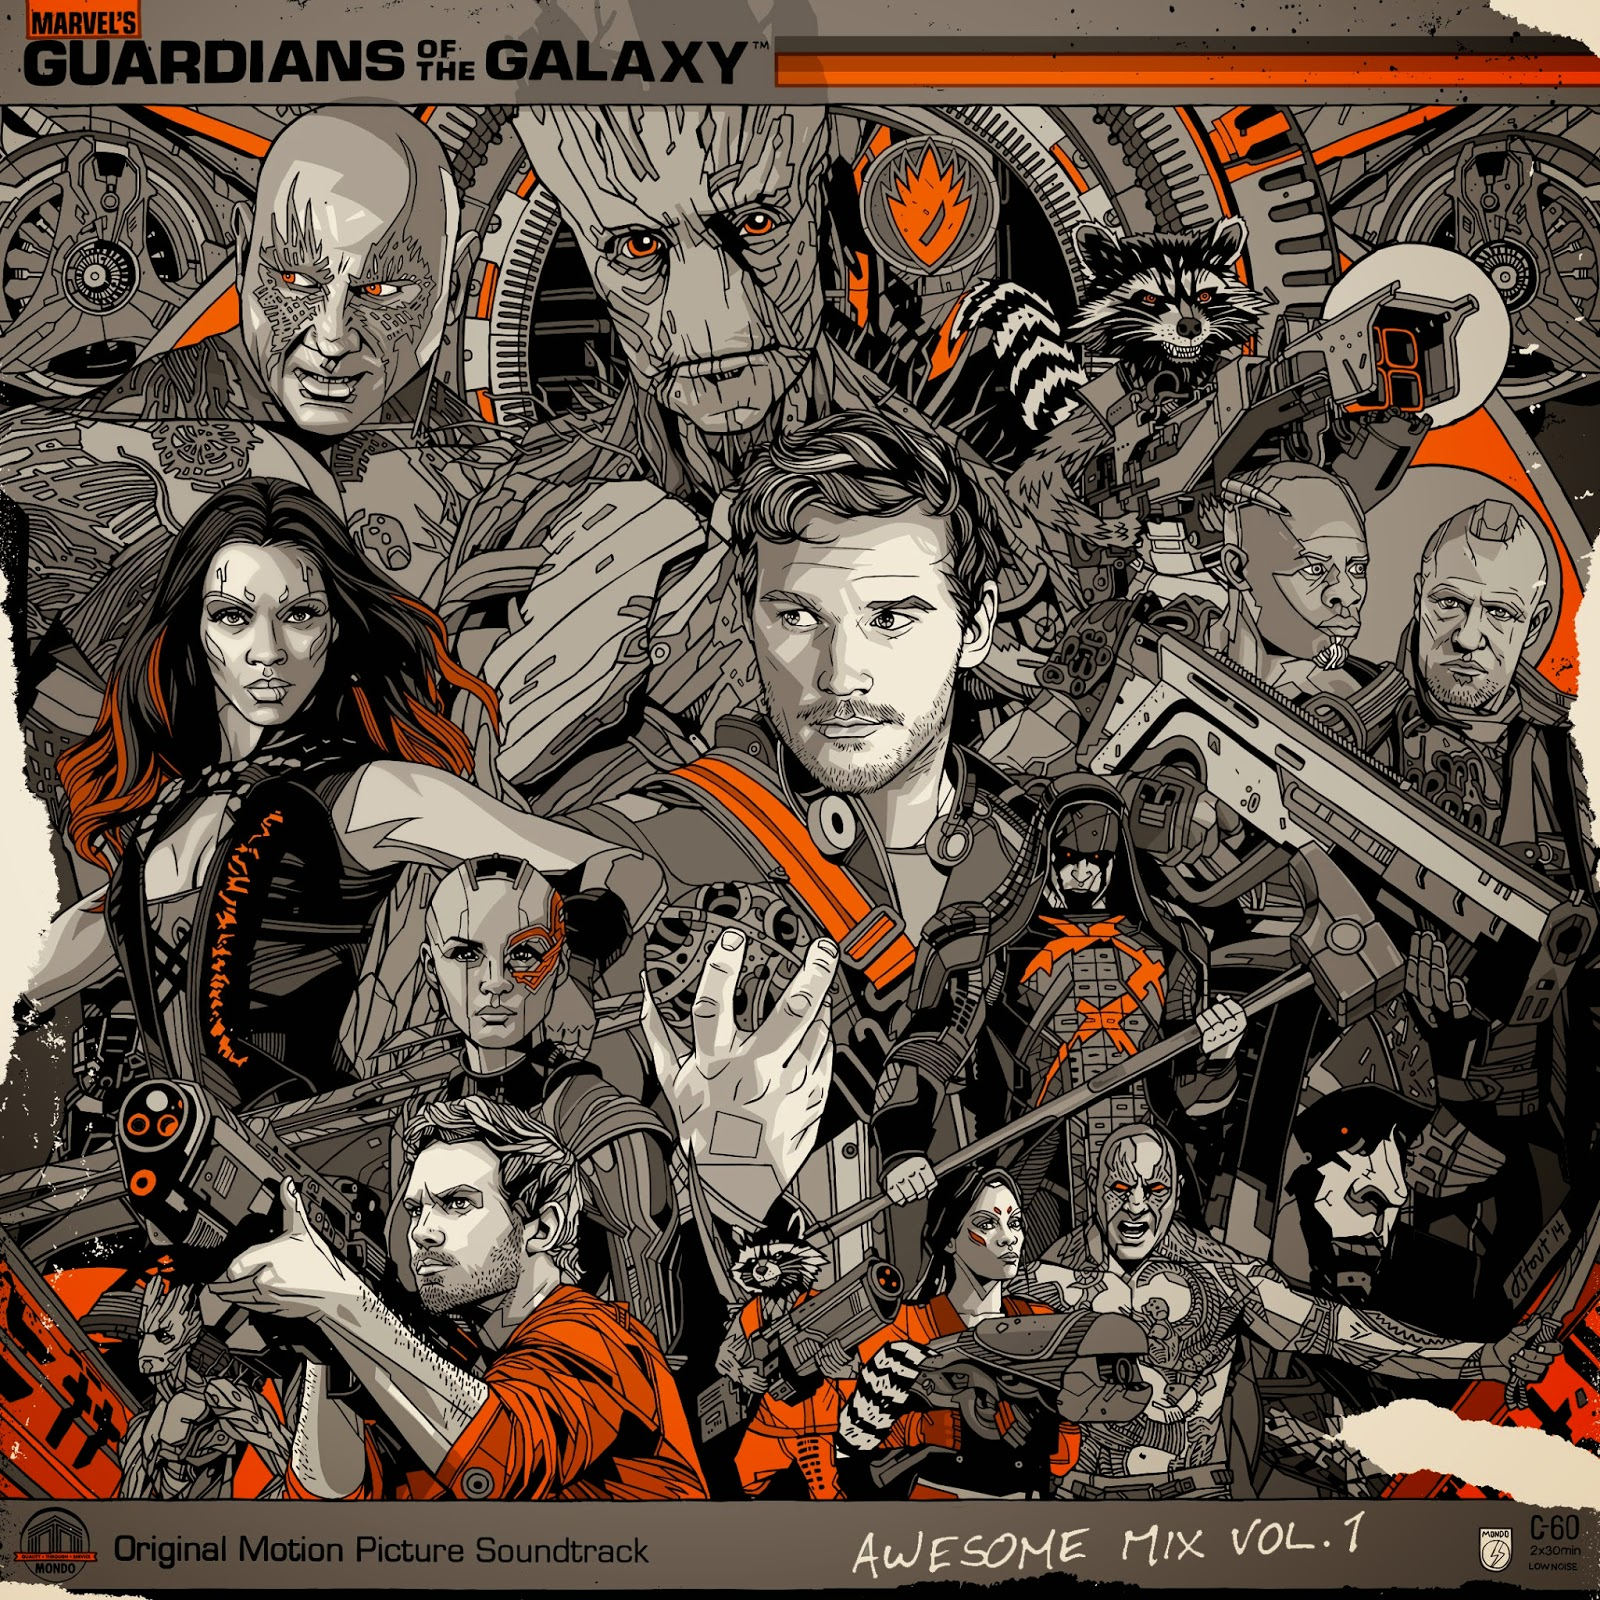 Guardians of the Galaxy Soundtrack Deluxe Vinyl LP with Cover Artwork by Tyler Stout